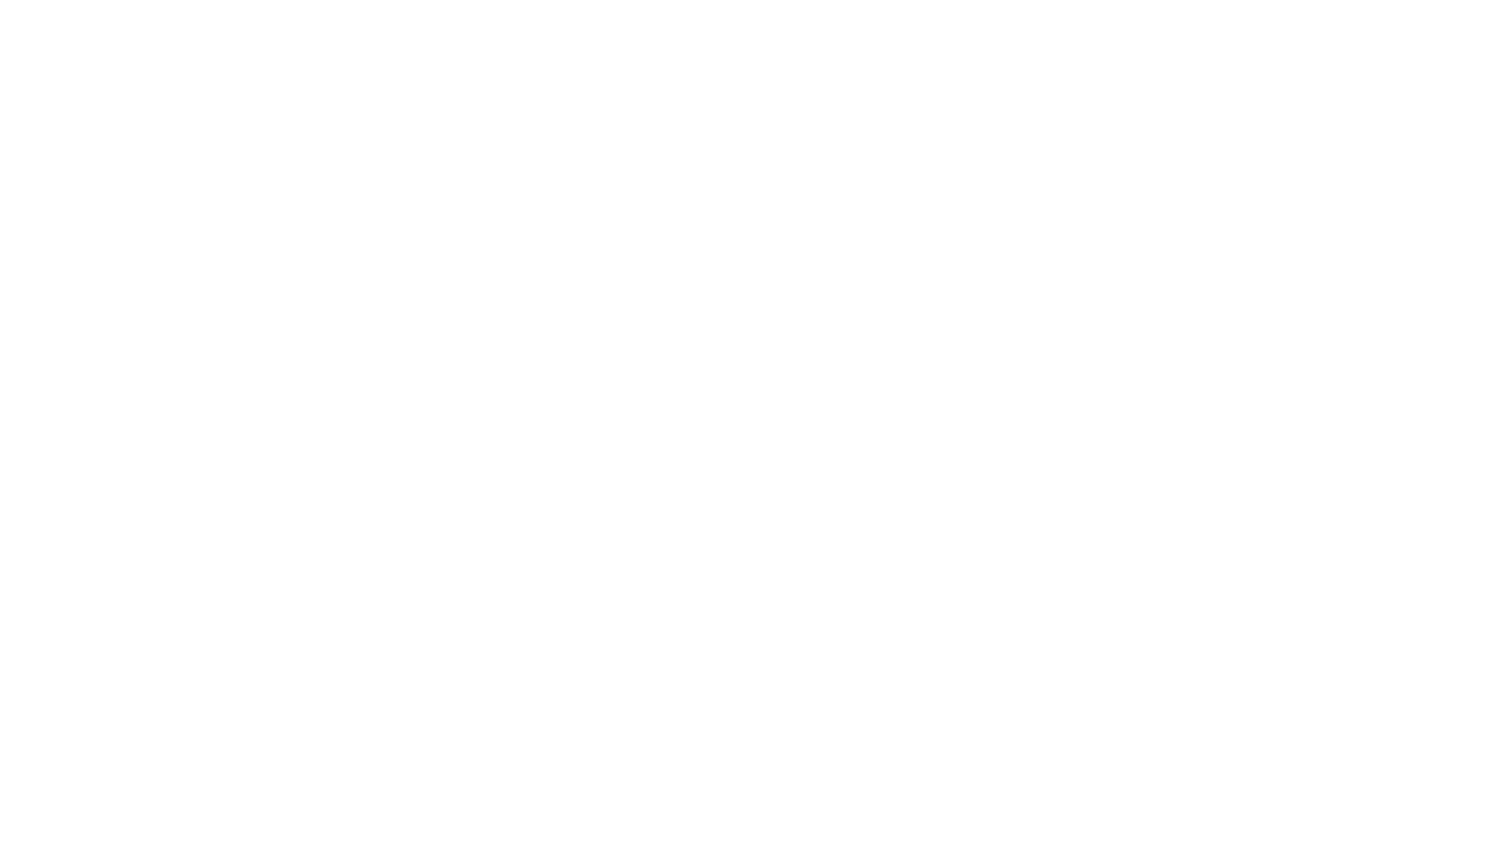 Natural Foot Health Institute